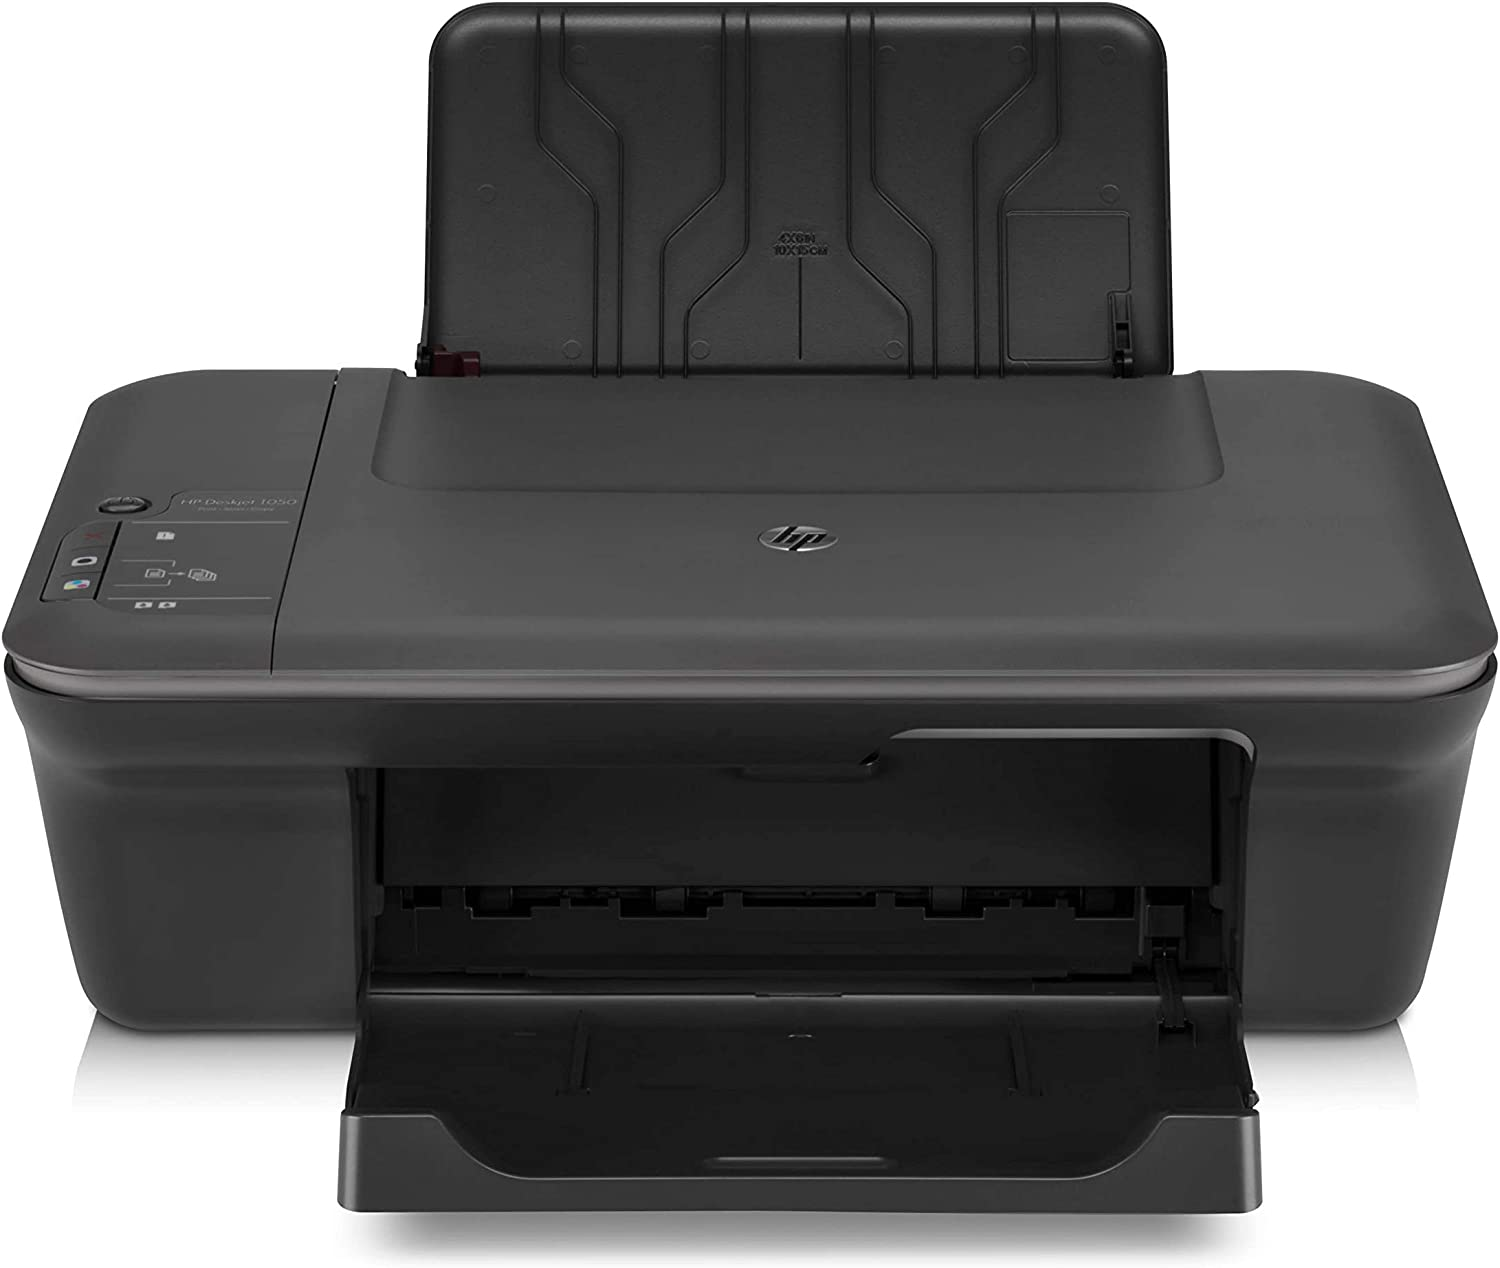 HP Deskjet 1055 J410E Inkjet Multifunction Printer - Color - Photo Print - Desktop - Printer, Copier, Scanner - 16 ppm Mono/12 ppm Color Print - 5.5 ppm Mono/4 ppm Color Print (ISO) - 61 Second Photo - 4800 x 1200 dpi Print - 4.5 cpm Mono/2.5 cpm Color Copy - 1200 dpi Optical Scan - 60 sheets Input - USB